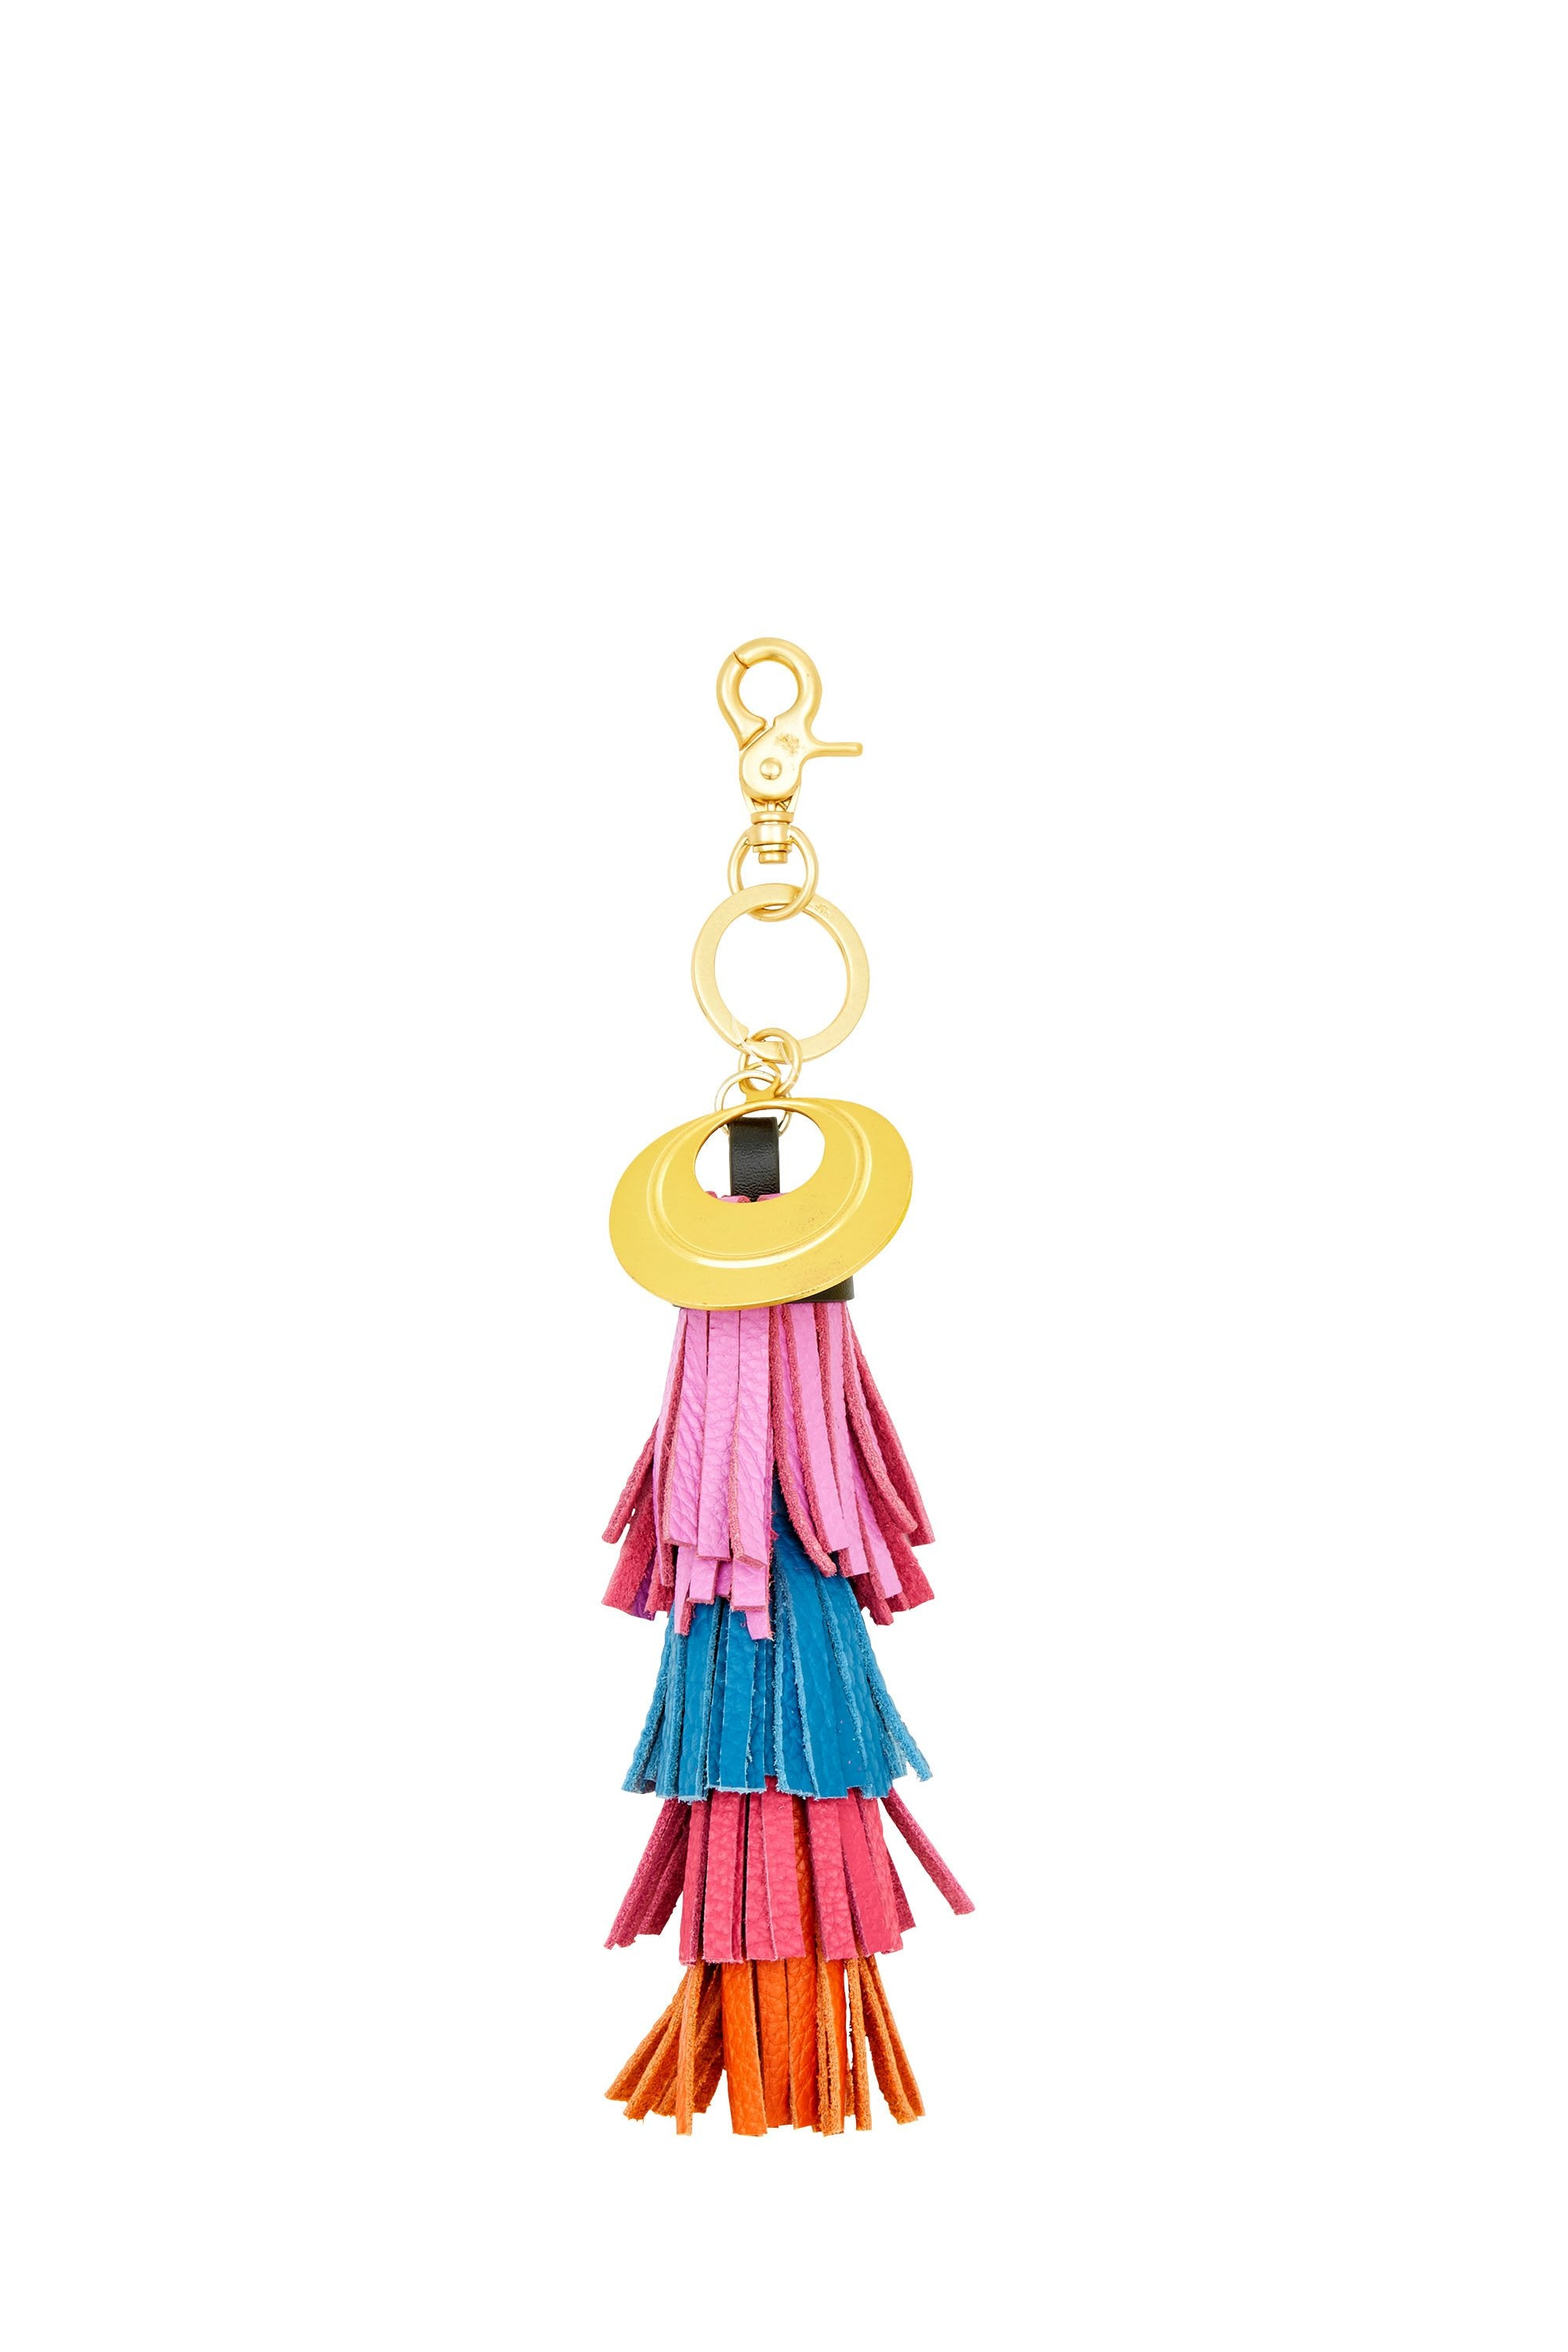 RIO RIOT LAYERED LEATHER TASSEL KEY RING